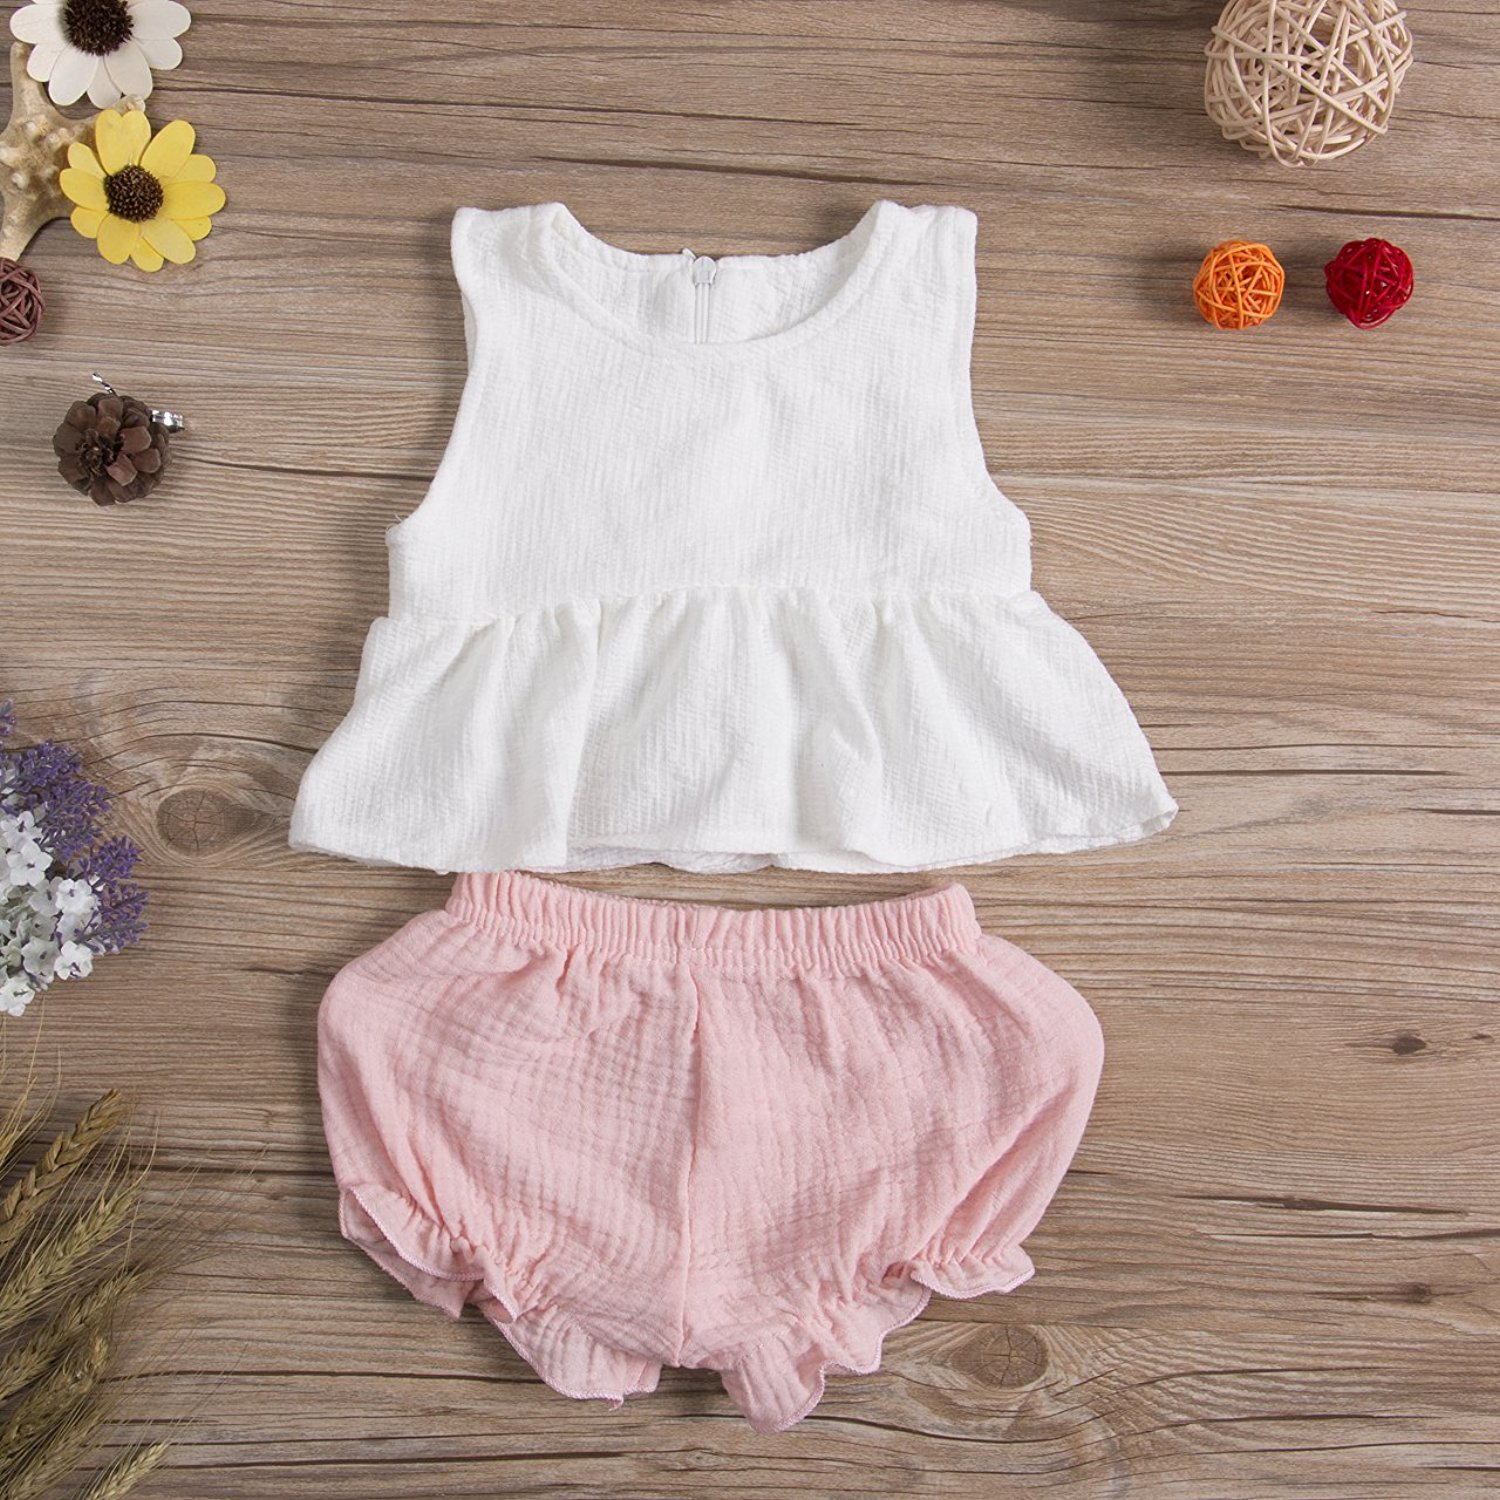 2 PC Baby Girl Tank Top + Short Pants Bloomer Set - Adorable Amazon Outfits for Baby Girls and Toddlers by popular North Carolina style blogger, Glitter, Inc.